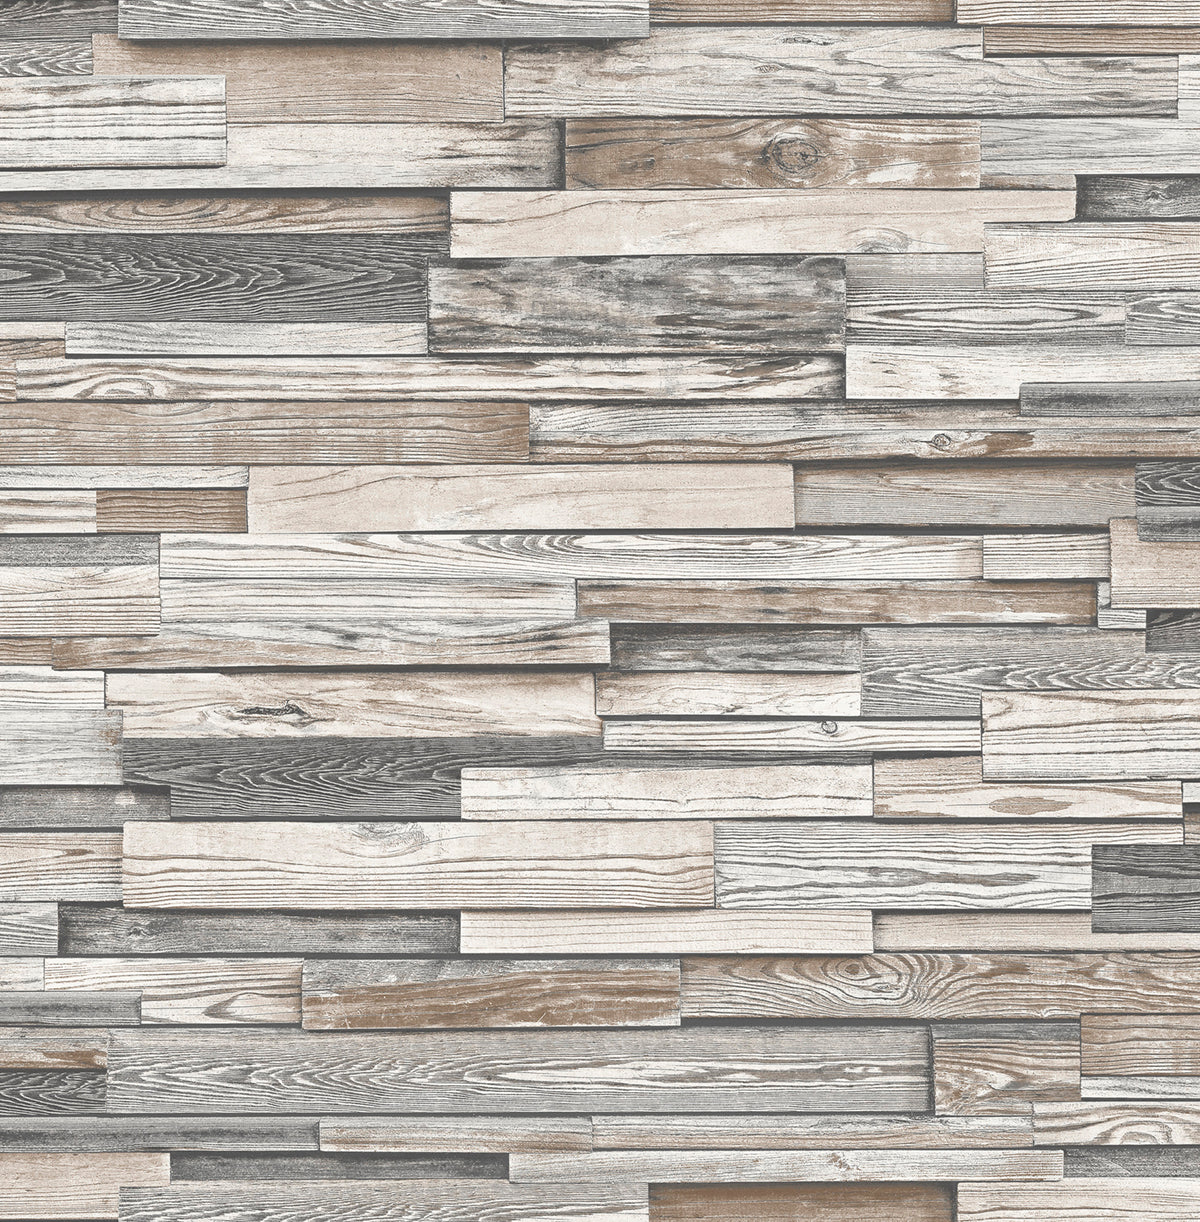 Nextwall Gray Reclaimed Wood Plank Peel And Stick Removable Wallpaper Say Decor Llc